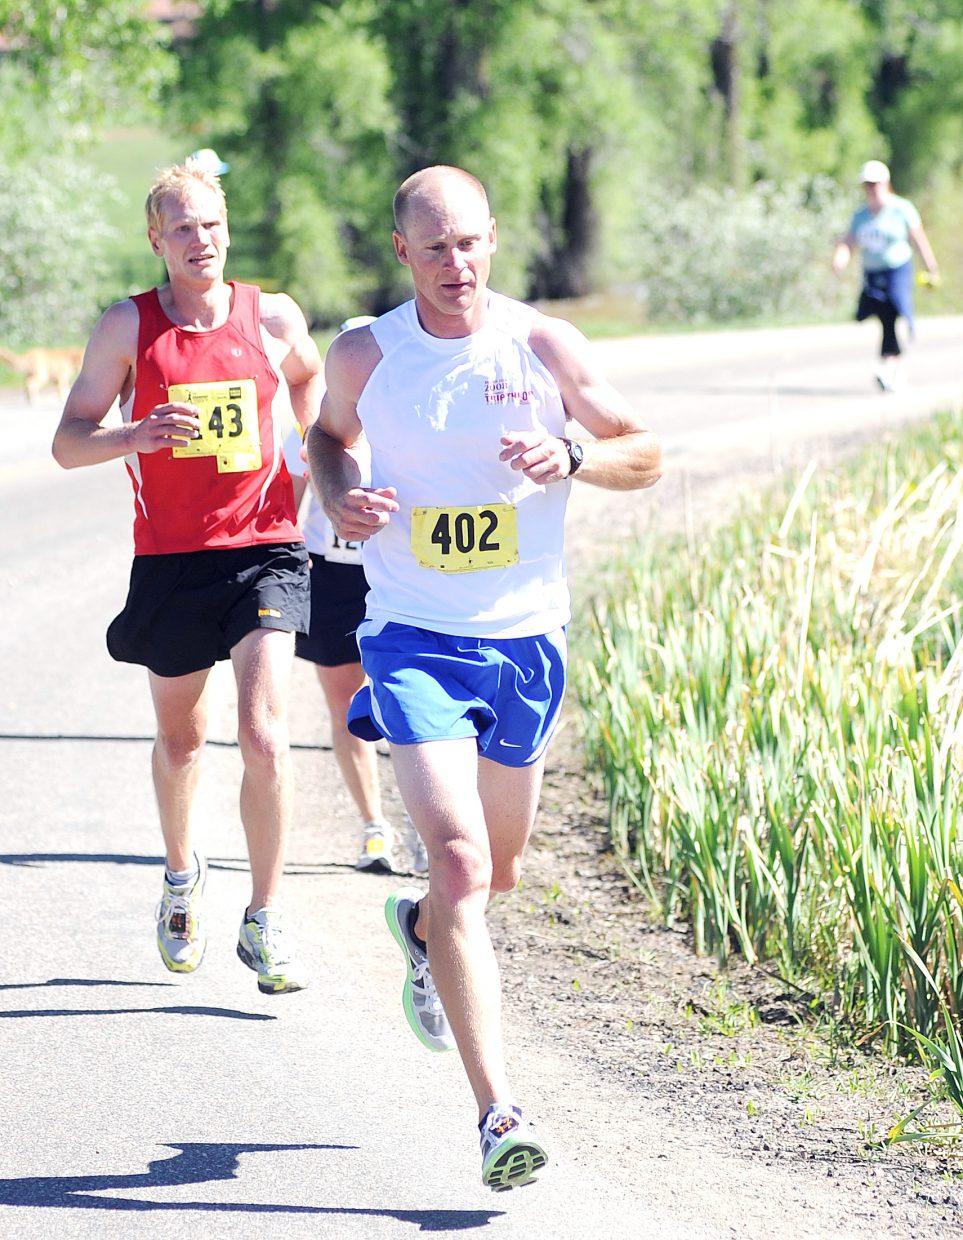 Todd Trapp tries to put a gap on Dan Edstrom during Sunday's Steamboat Marathon. Edstrom didn't go away, however, and later passed Trapp, going on to win the race. Trapp was second.